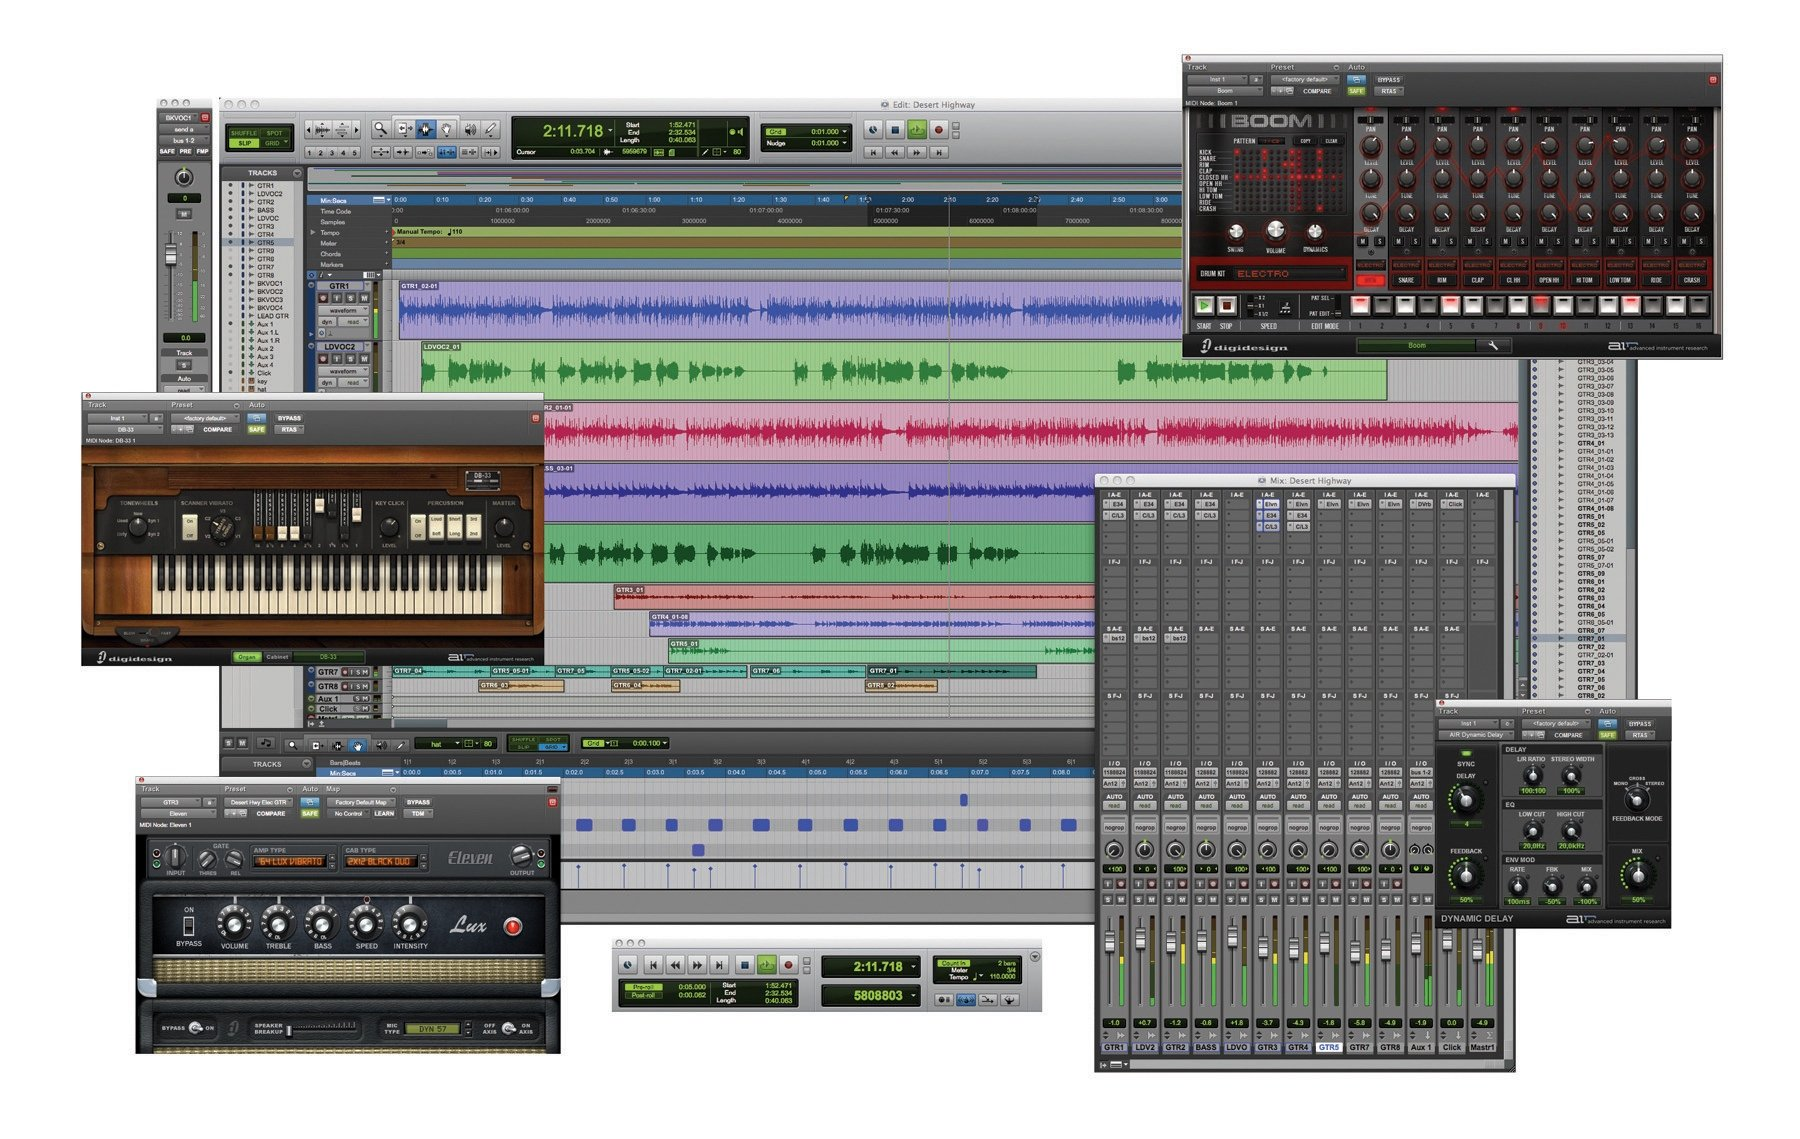 Pro tools 12. 7 can not open ilok no license but i have avid pro.